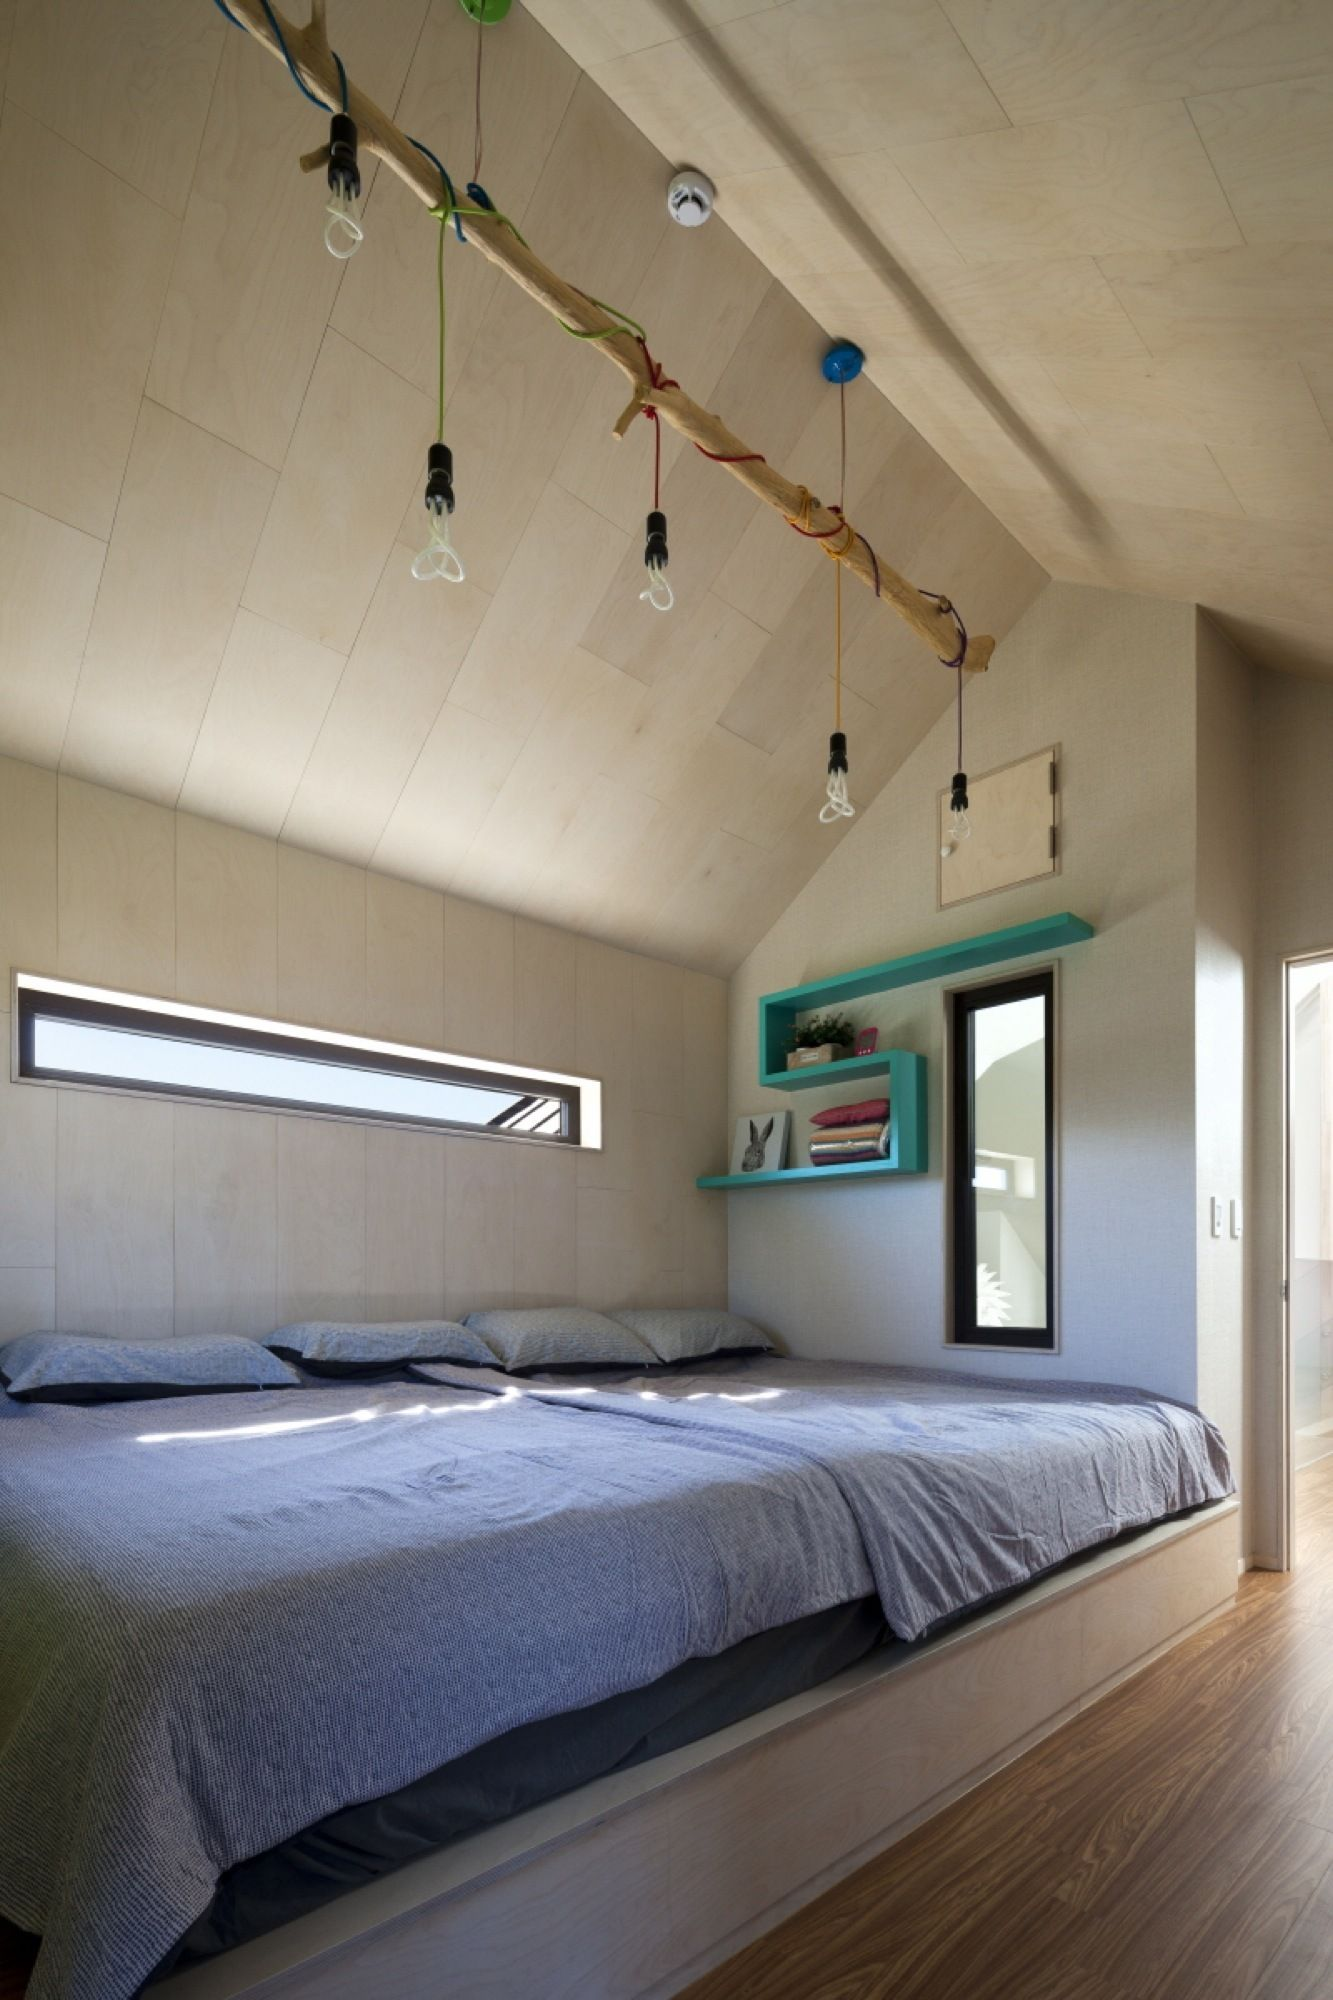 Pin By Dayana Najarro On Room Ideas Home Bedroom House Rooms Home